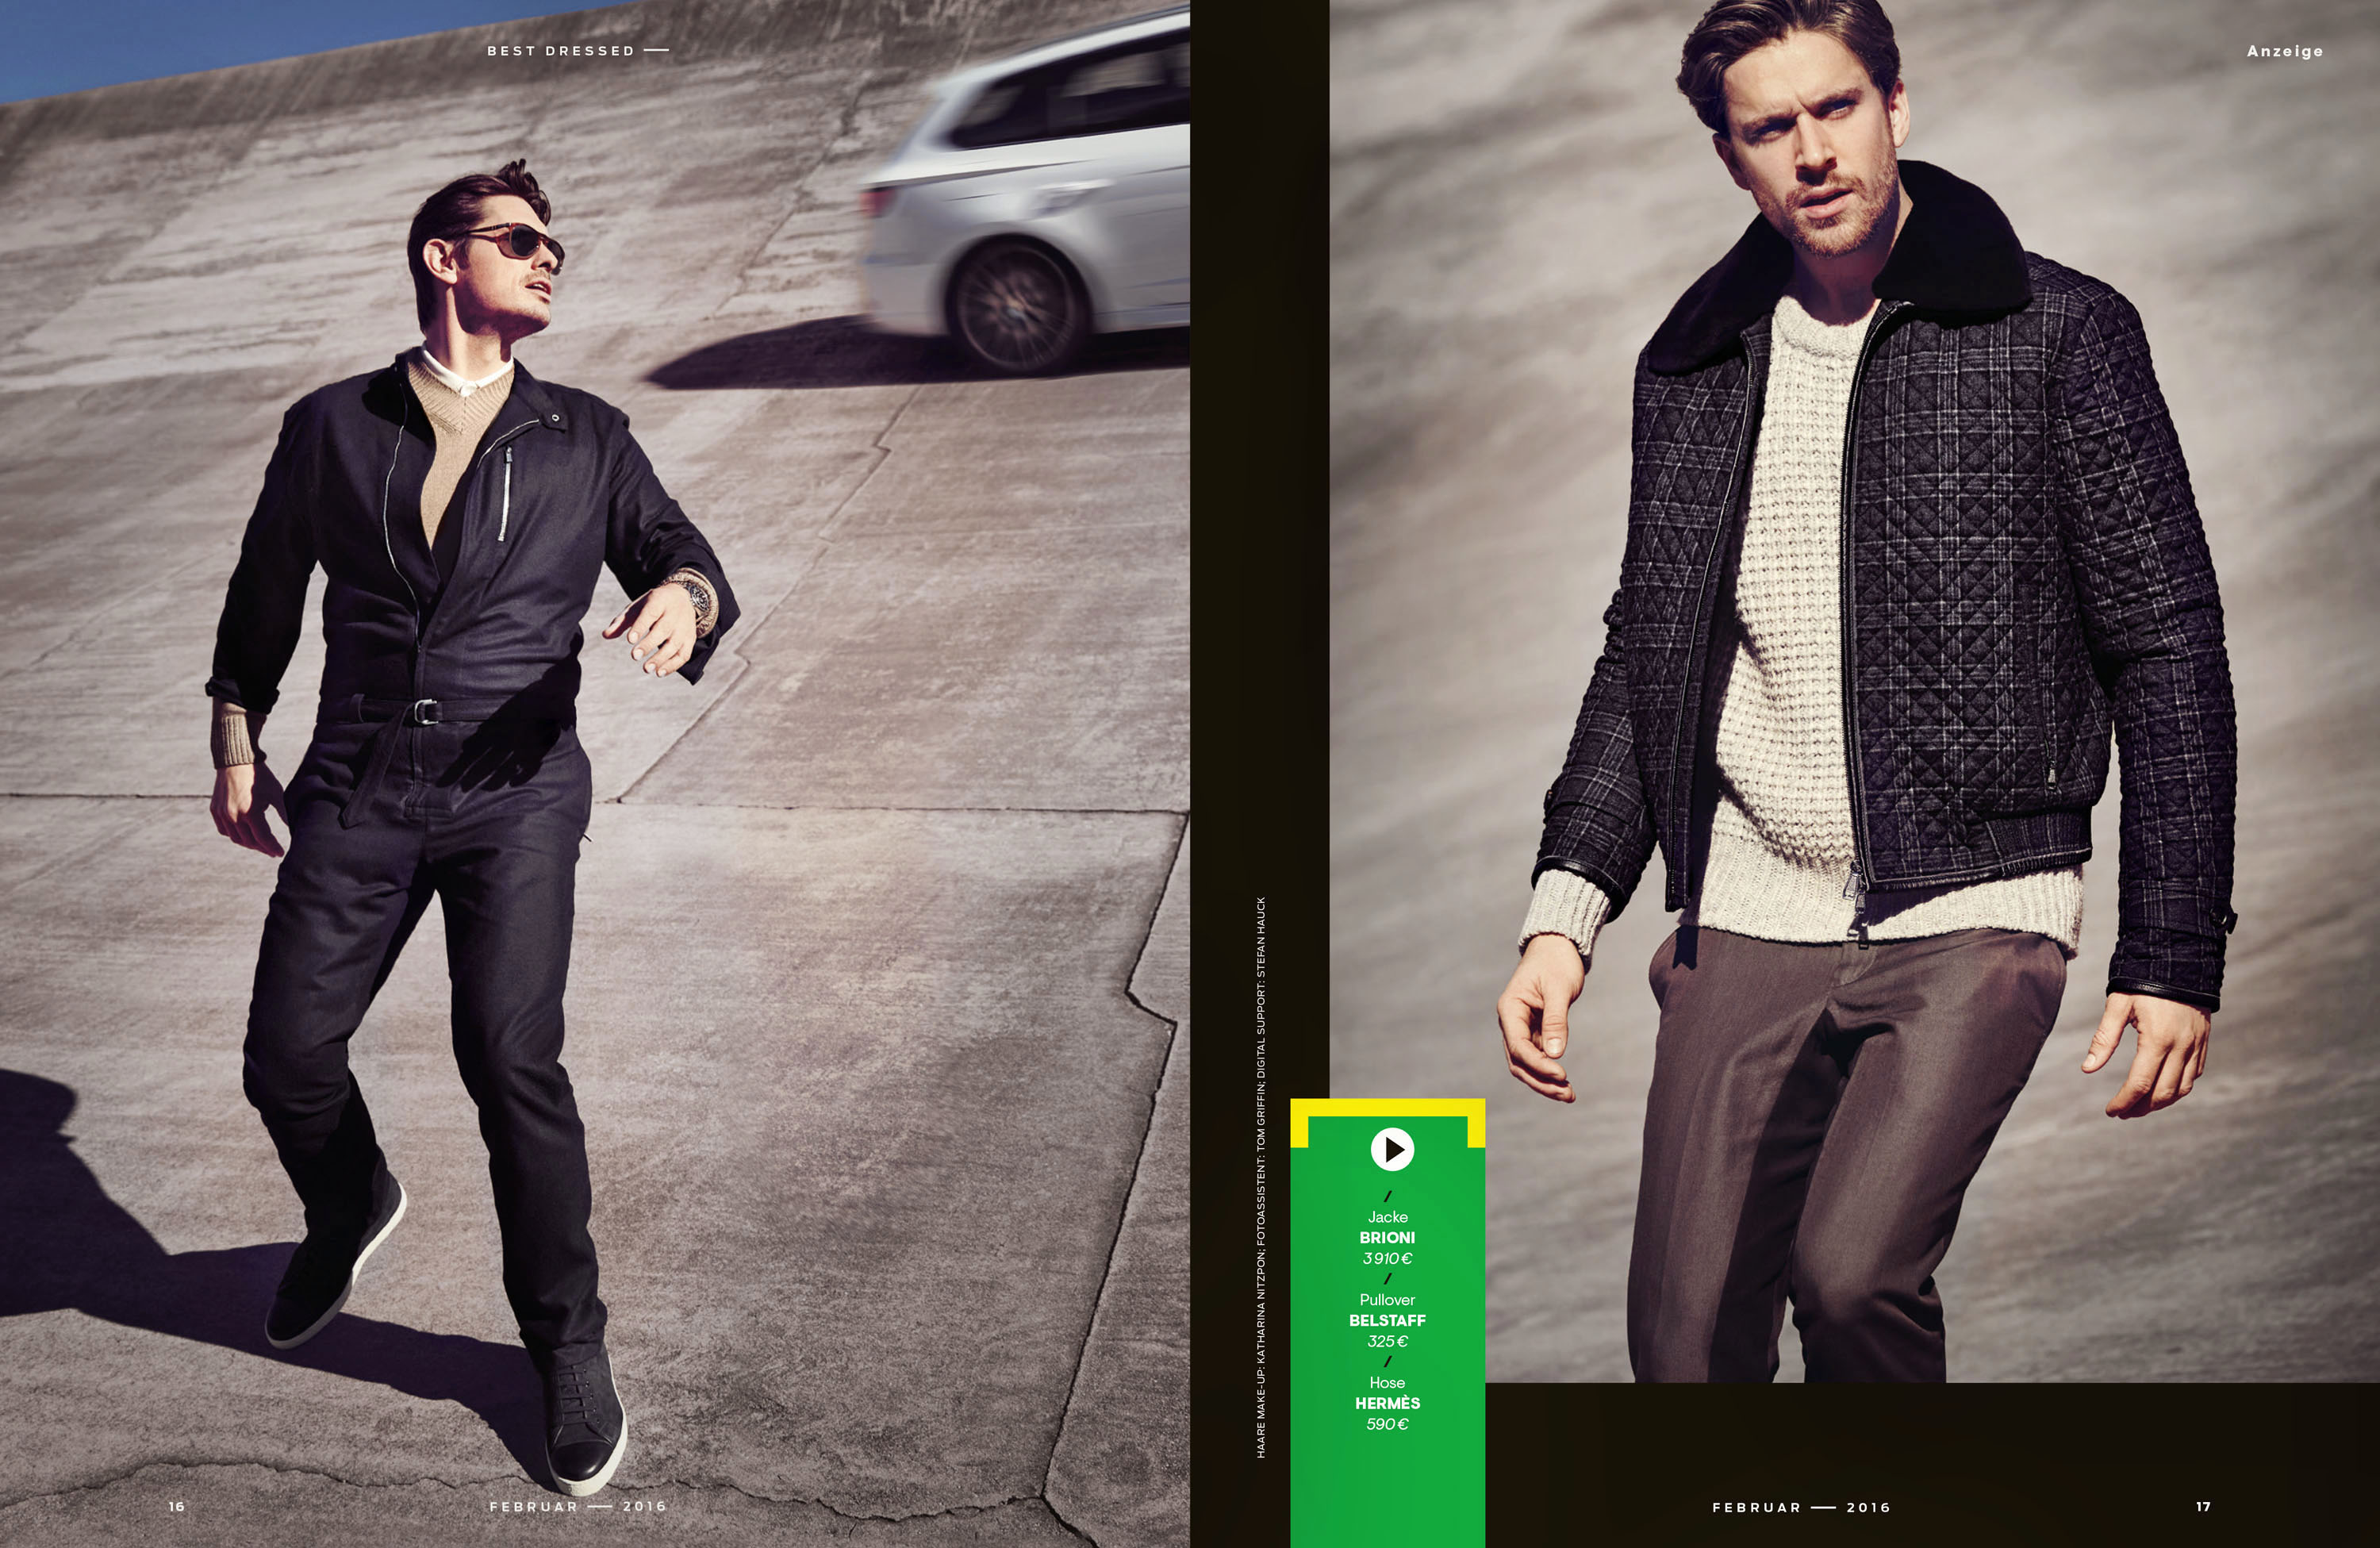 Detlef Schneider Photography, 